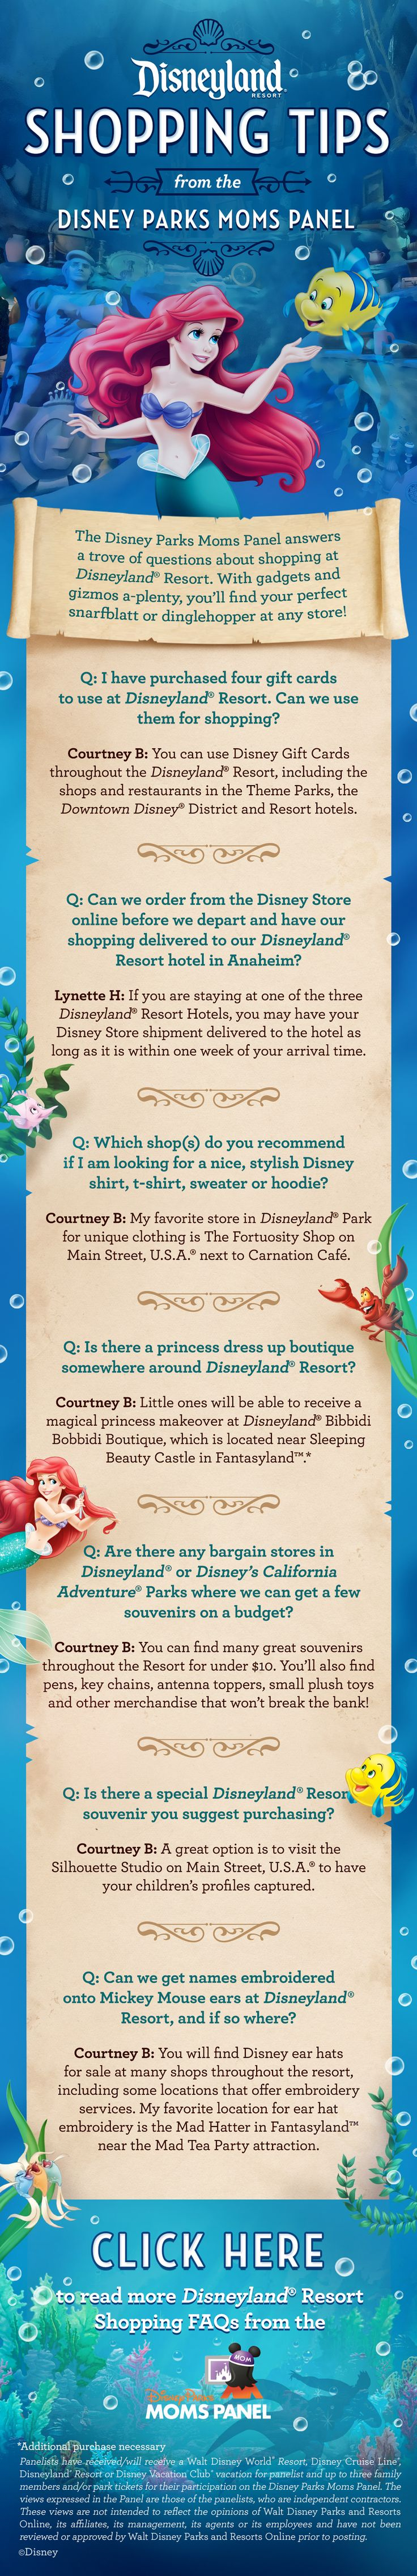 Disneyland shopping tips from the Disney Parks Moms Panel.